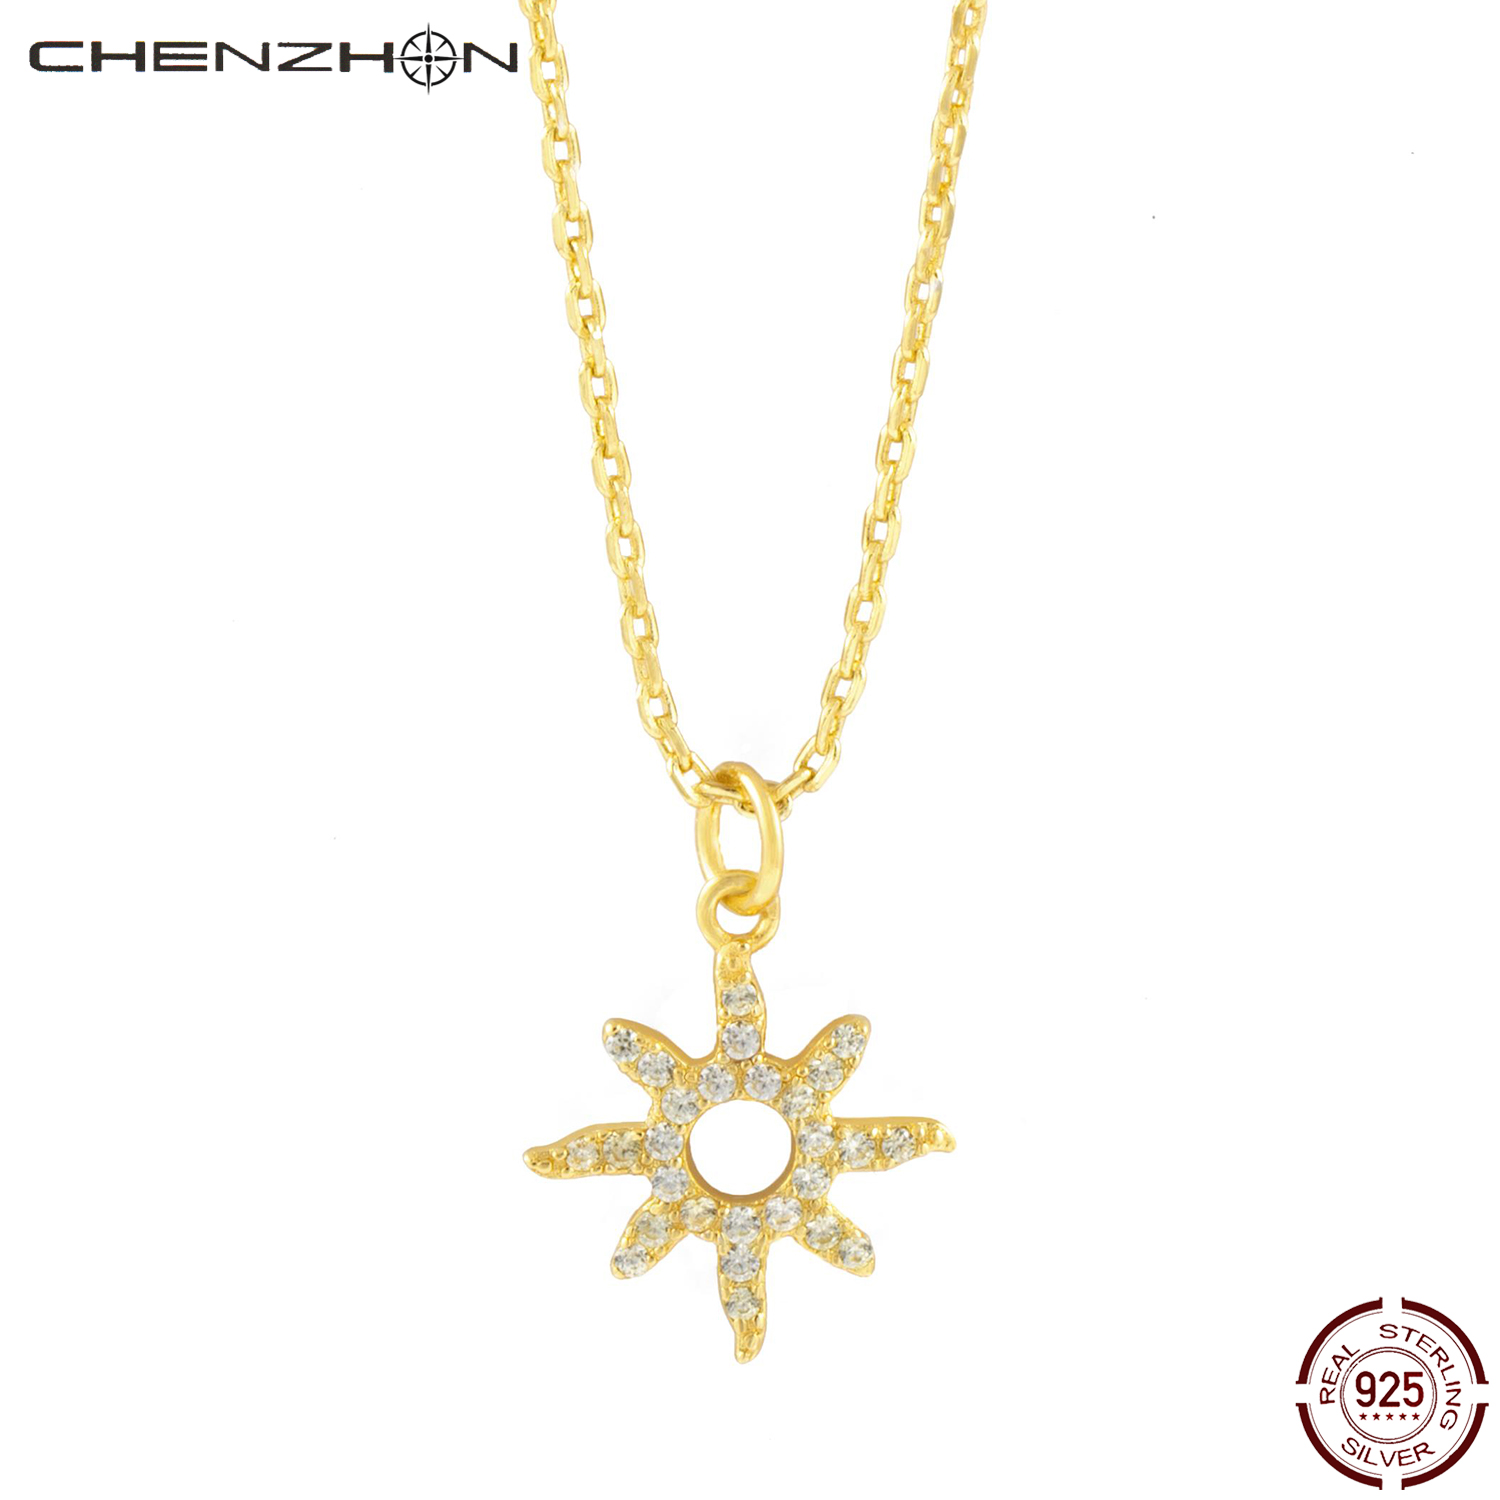 CHENZHON 925 Sterling Silver Charms Star Design Necklaces For Women Choker Chains Gold Color Snowflake Sweet Jewelry 2020 Gift